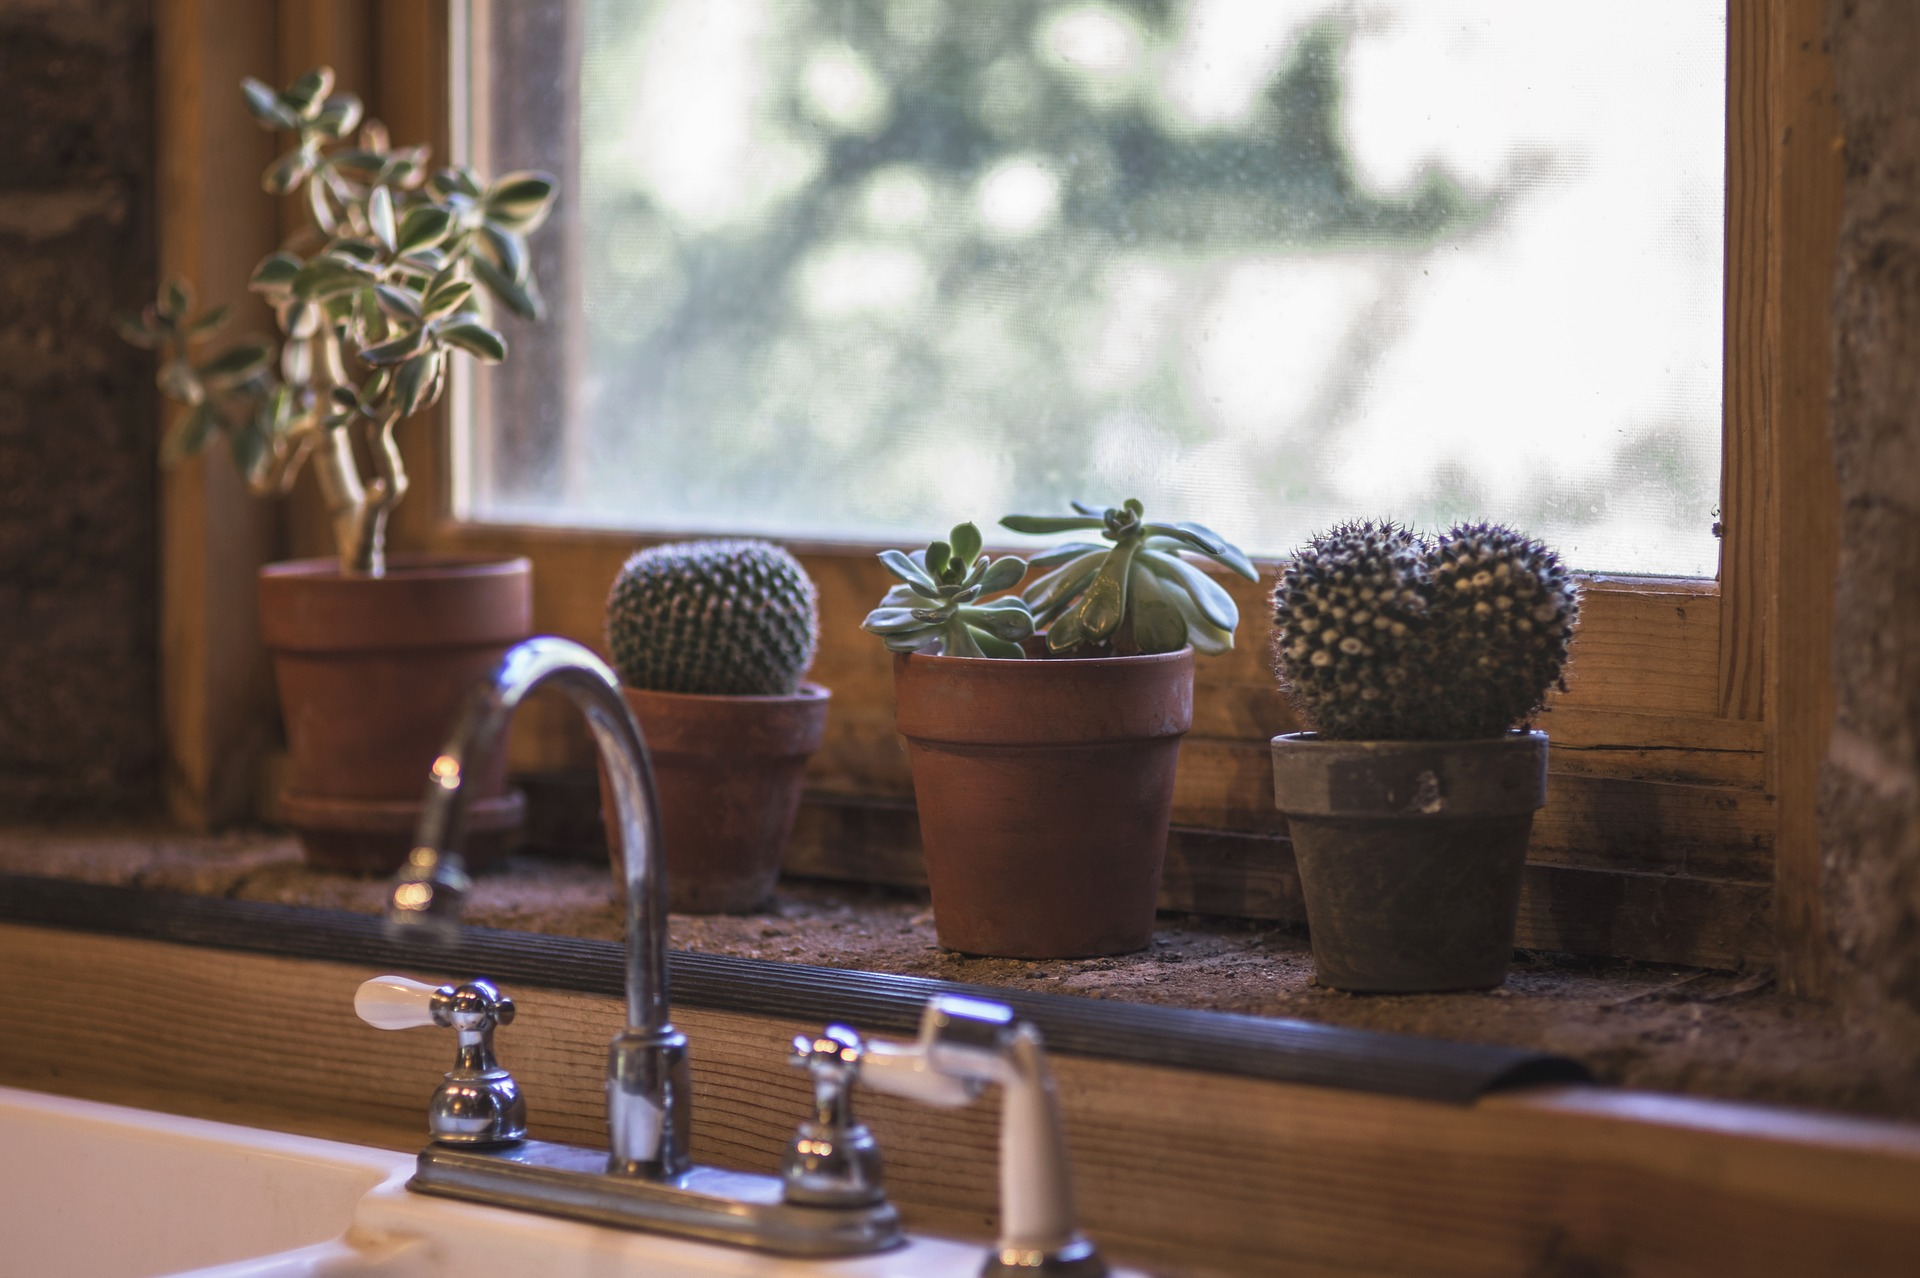 At the back of the best kitchen faucet are the cactus indoor plants